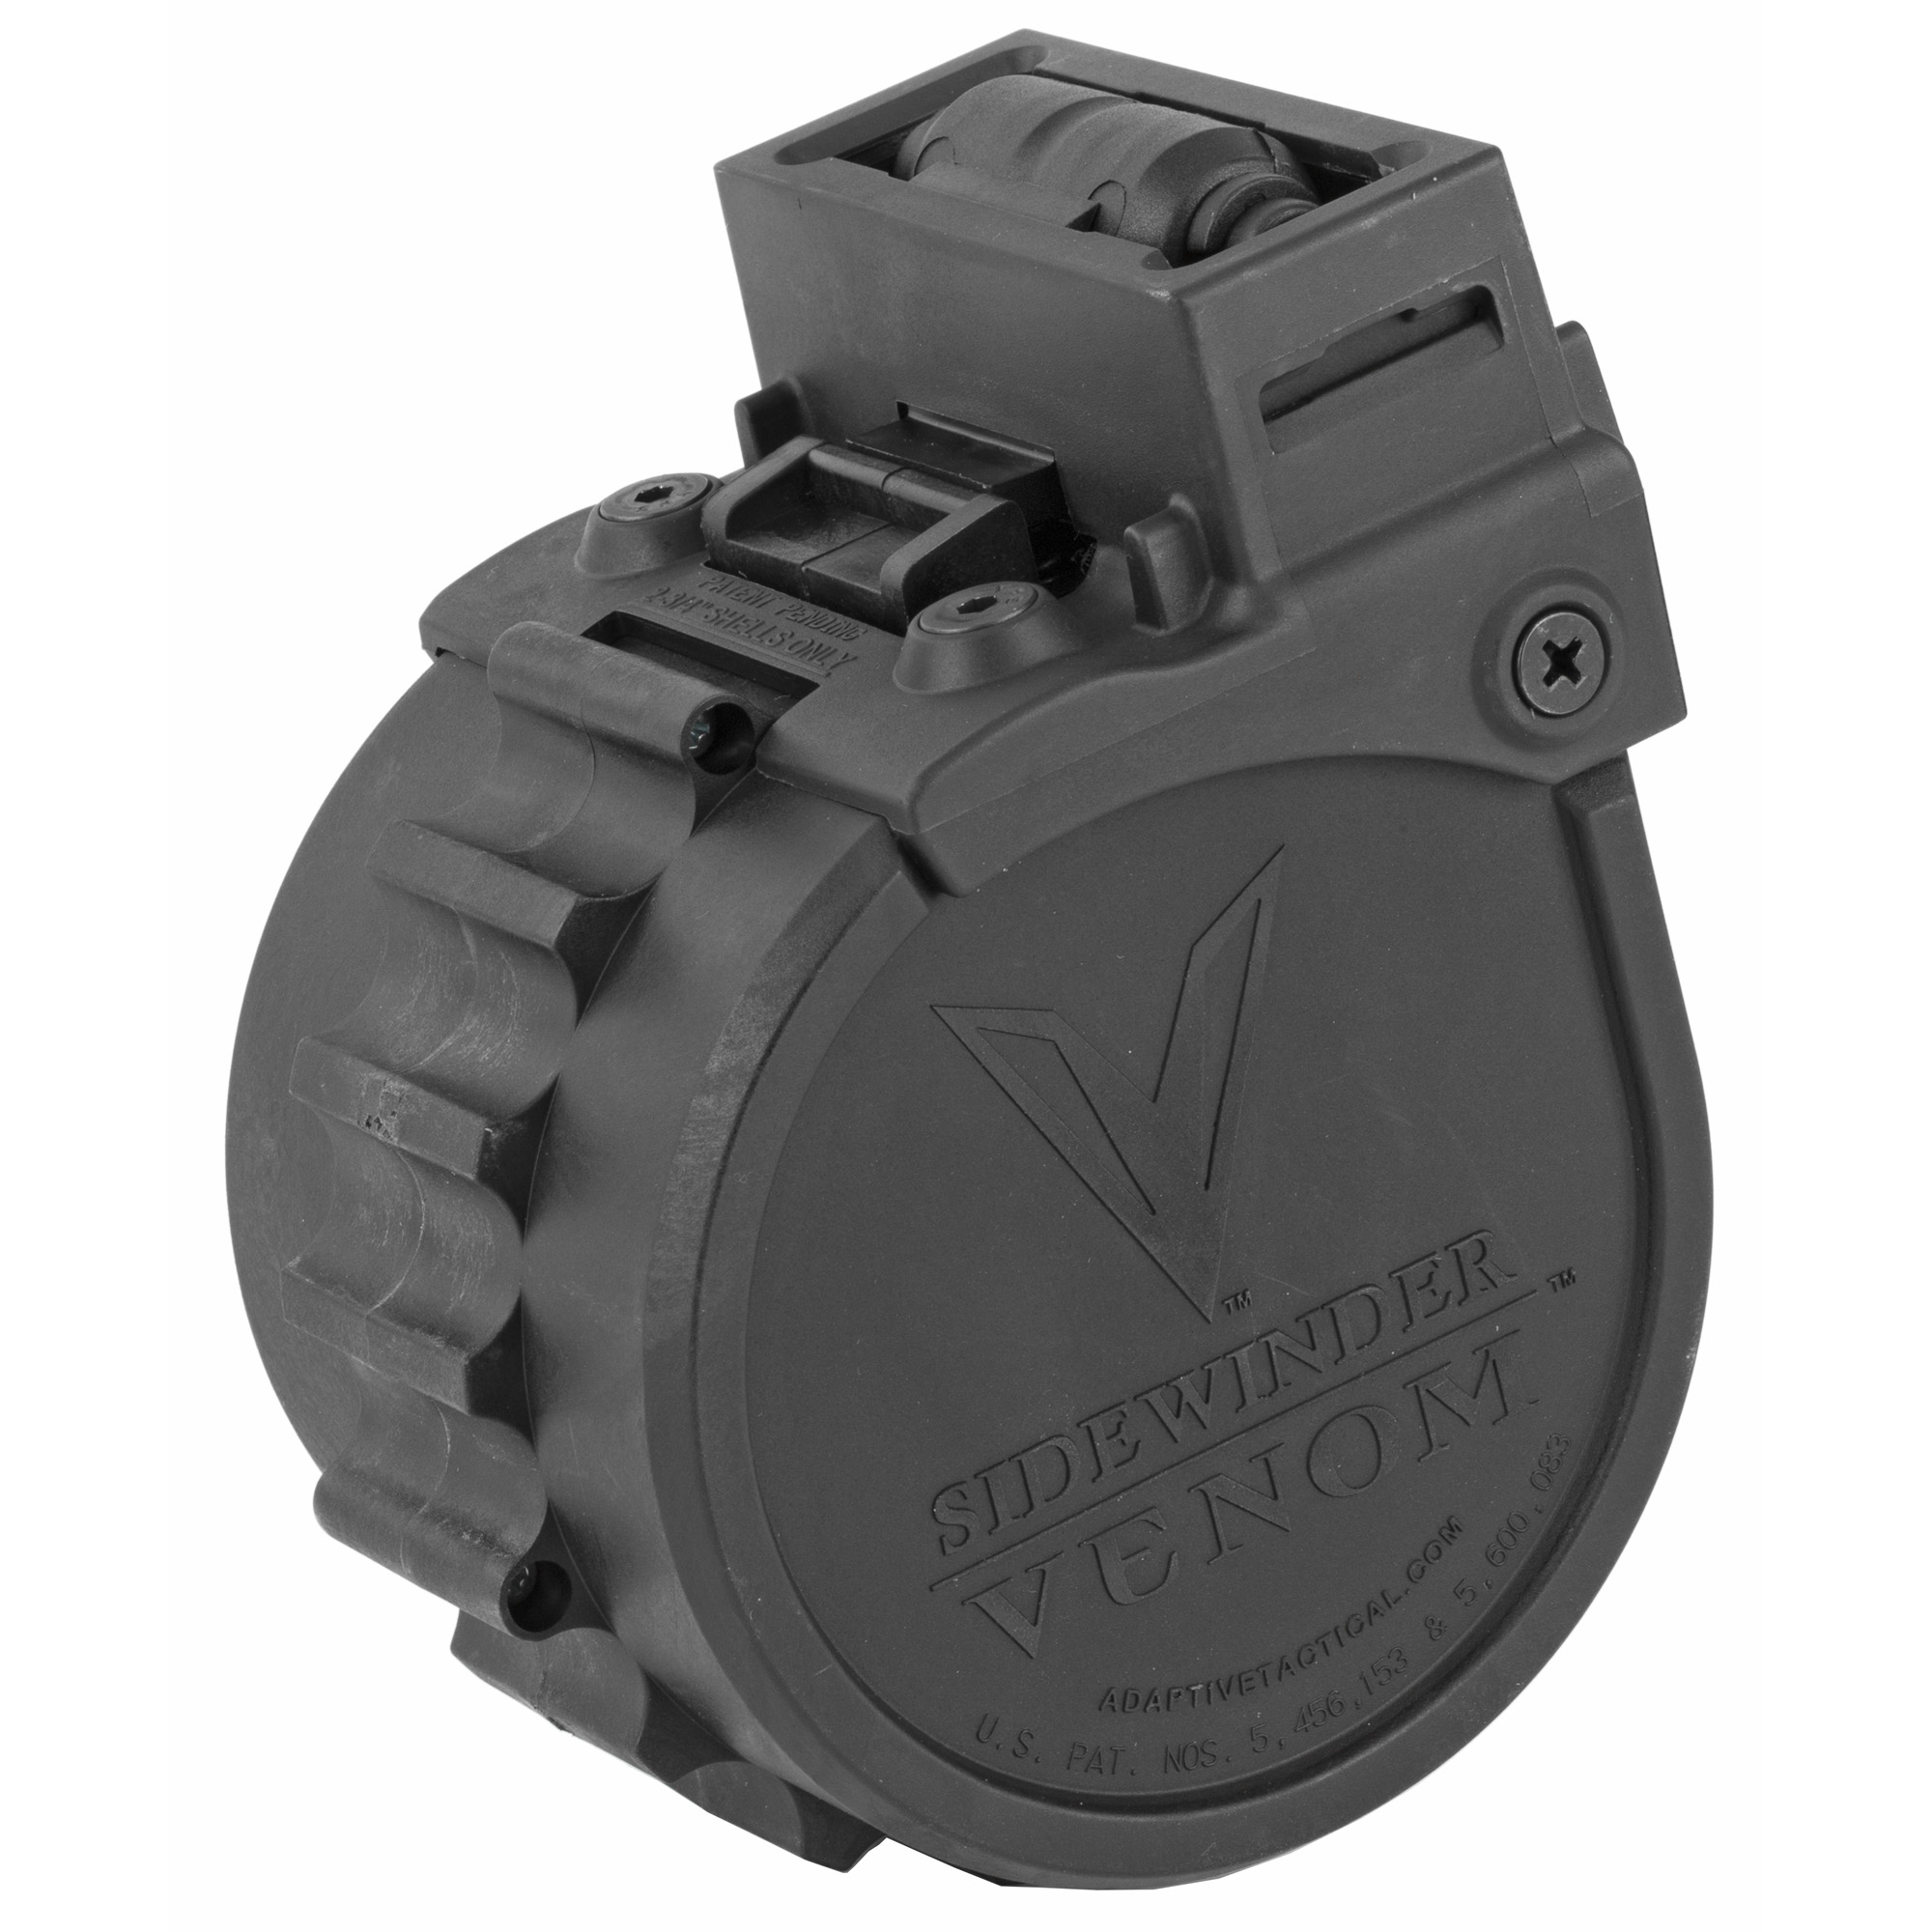 "This 10 round Rotary magazine is designed for use with the Sidewinder Venom magazine-fed shotgun system. Its lightning-fast reload action cycles 12 gauge rounds consistently and reliably for the ultimate in performance for defense"" range or competition."